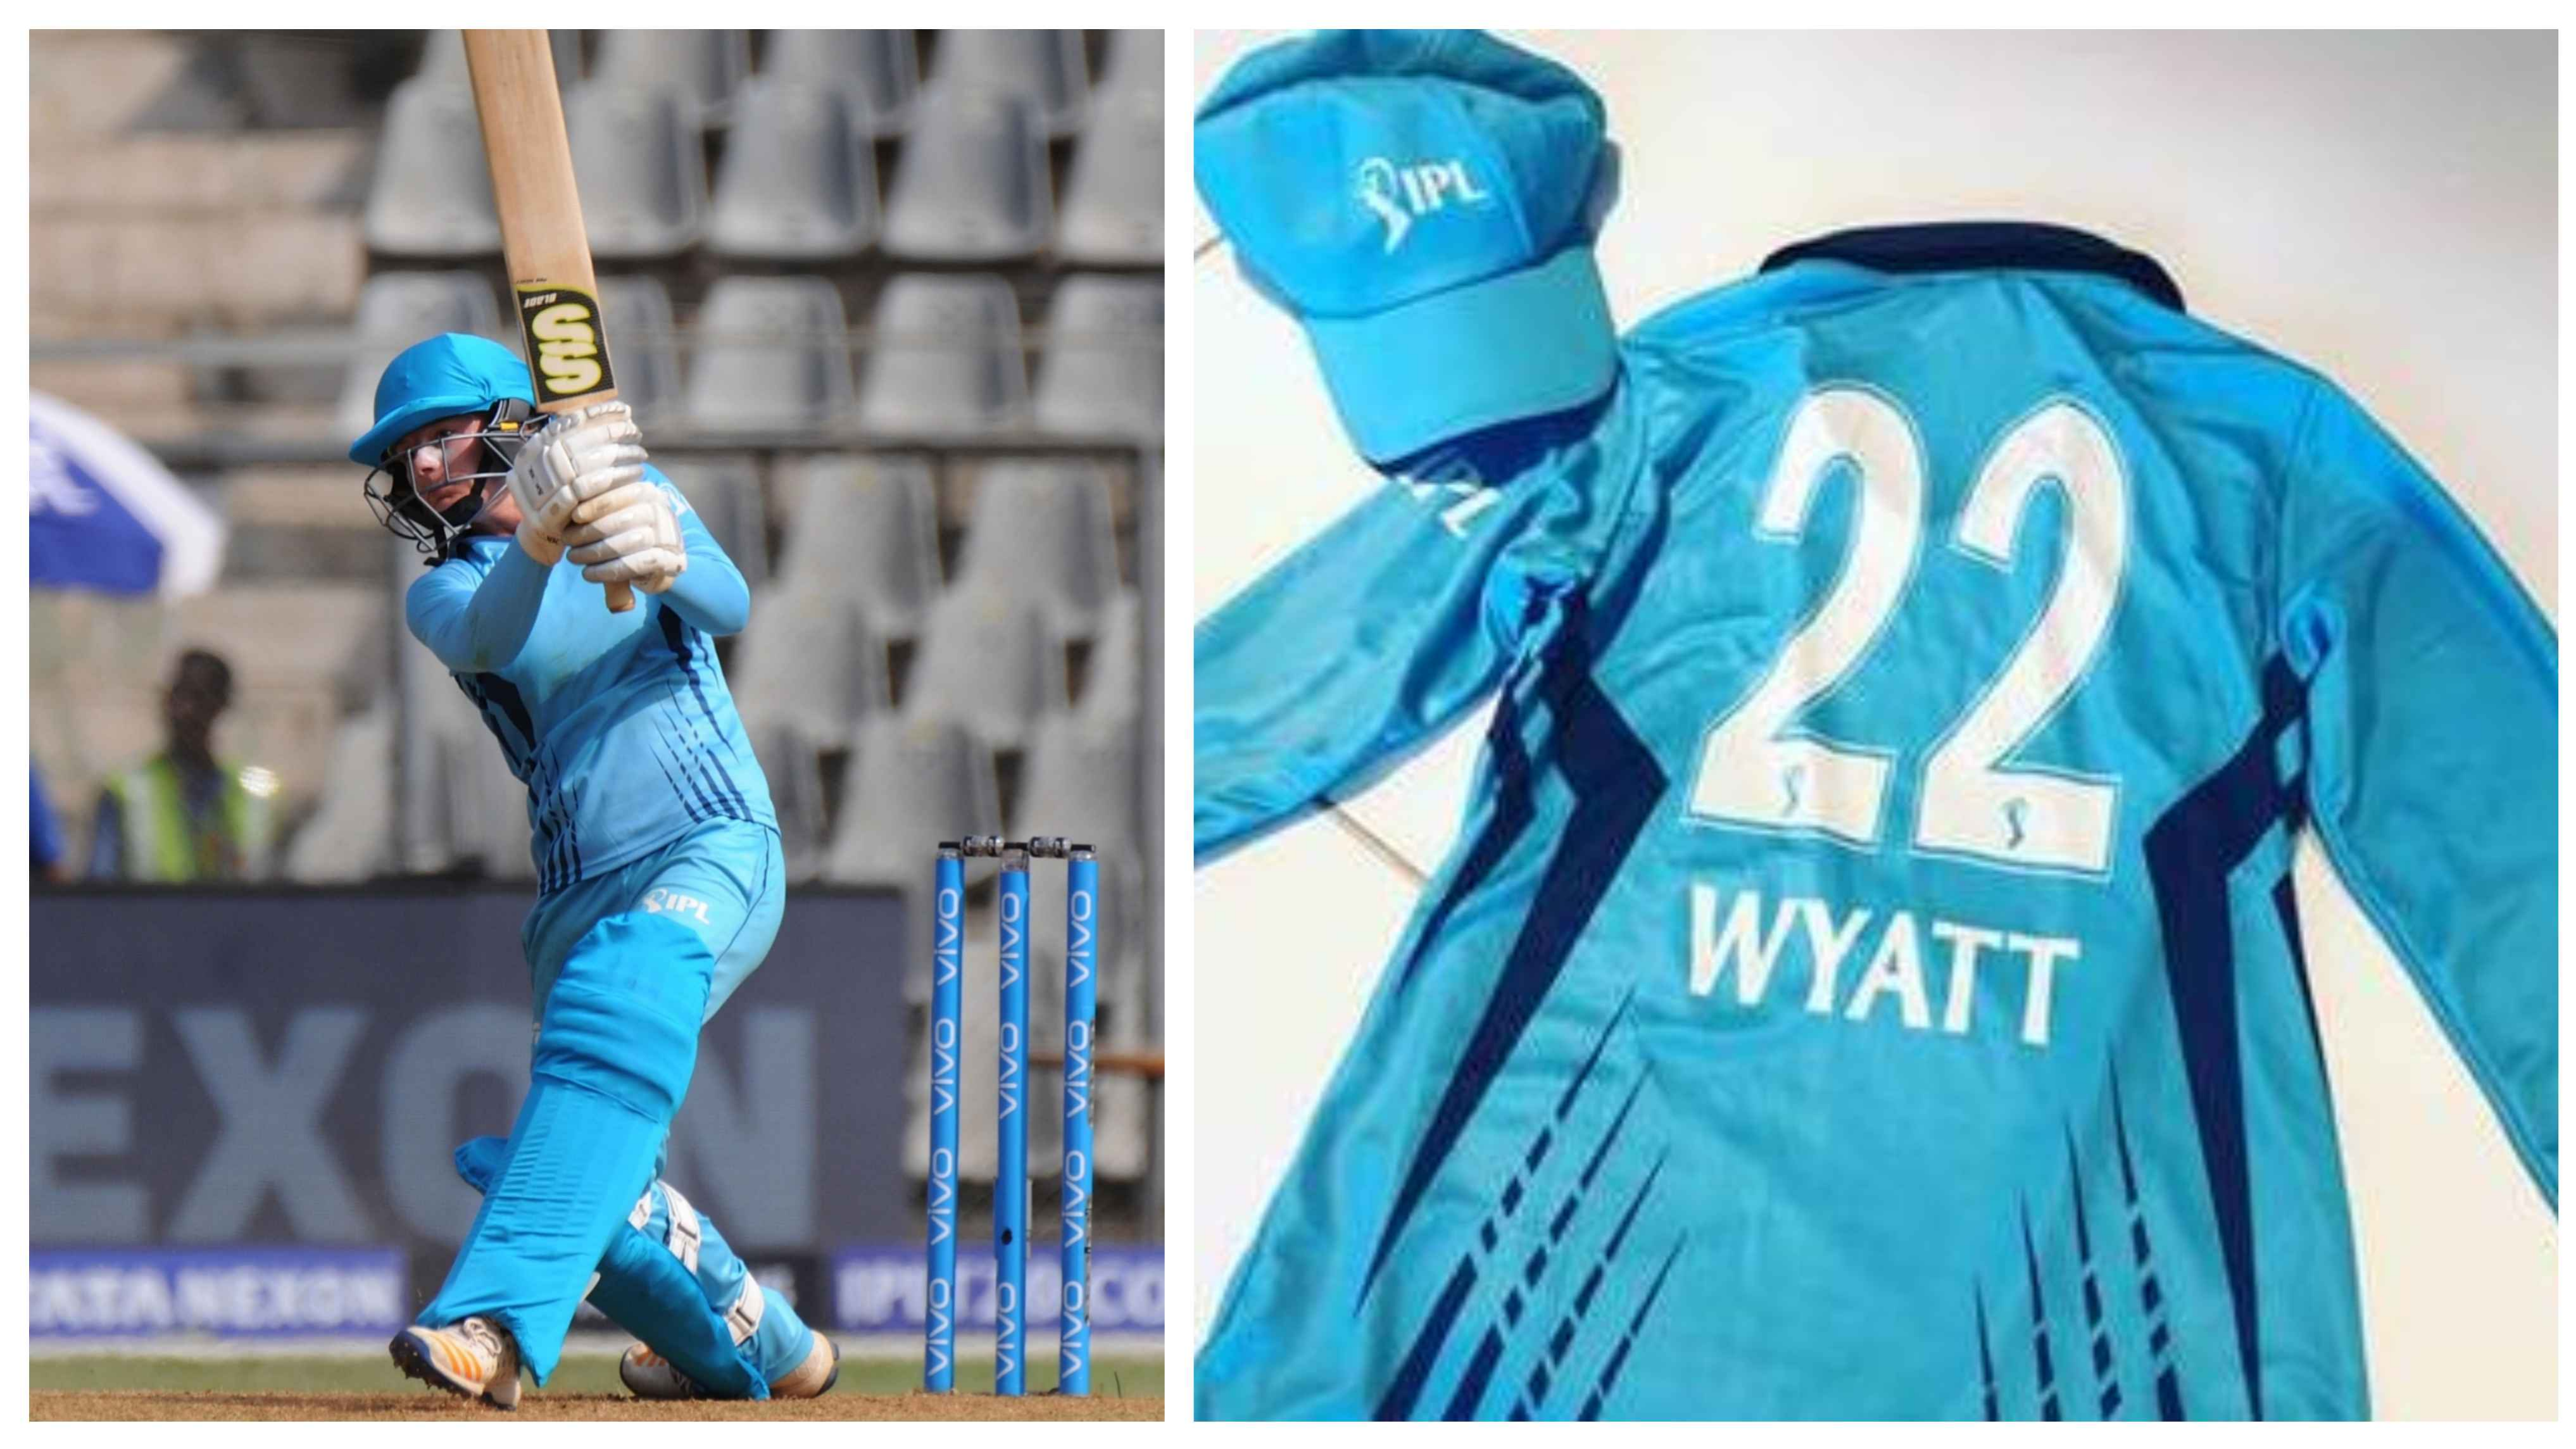 Danielle Wyatt reveals why she donned jersey No. 22 for IPL 2018 Women's T20 Challenge